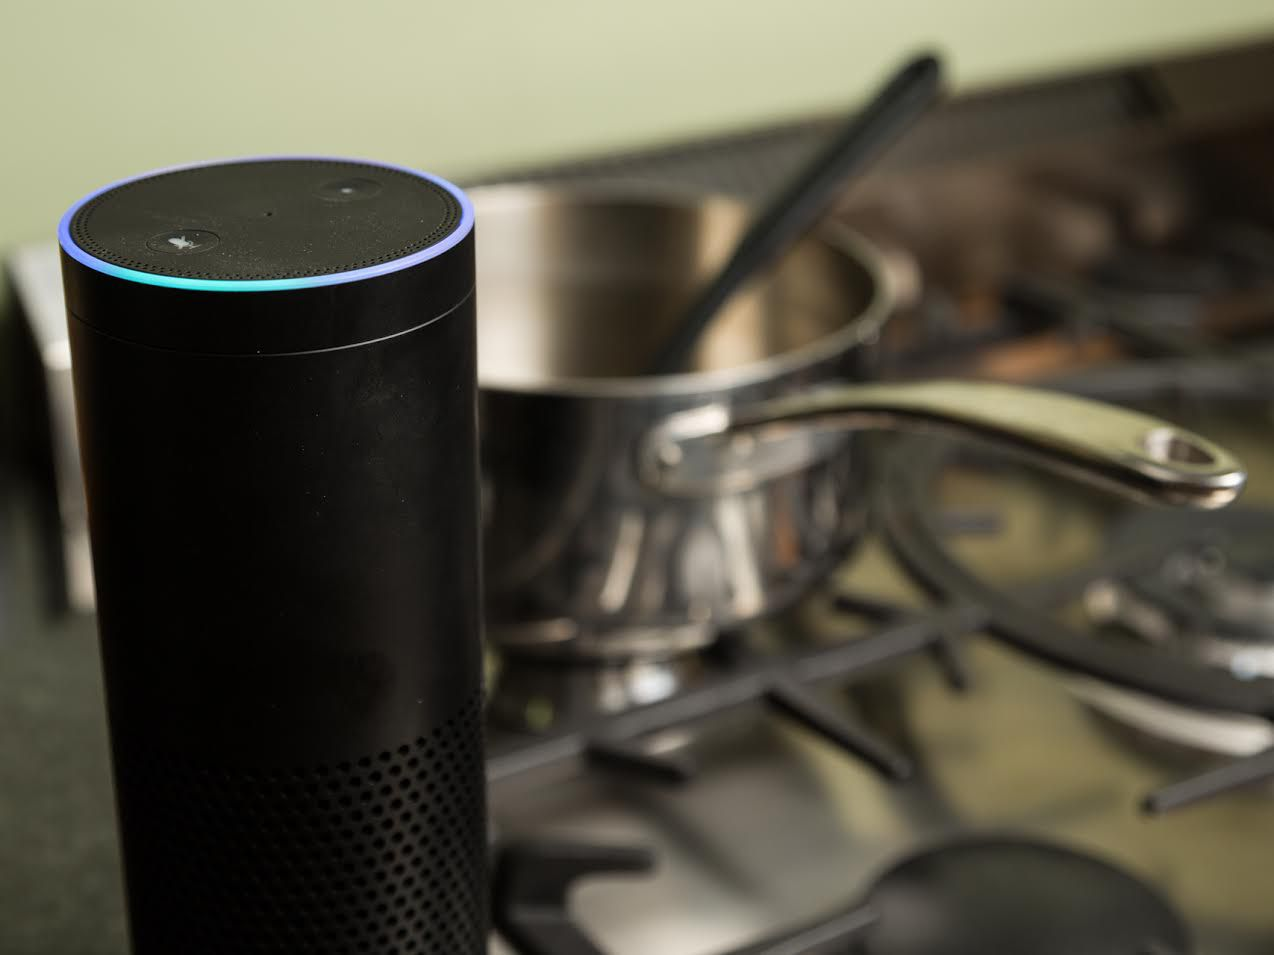 amazon-echo-kitchen.jpg